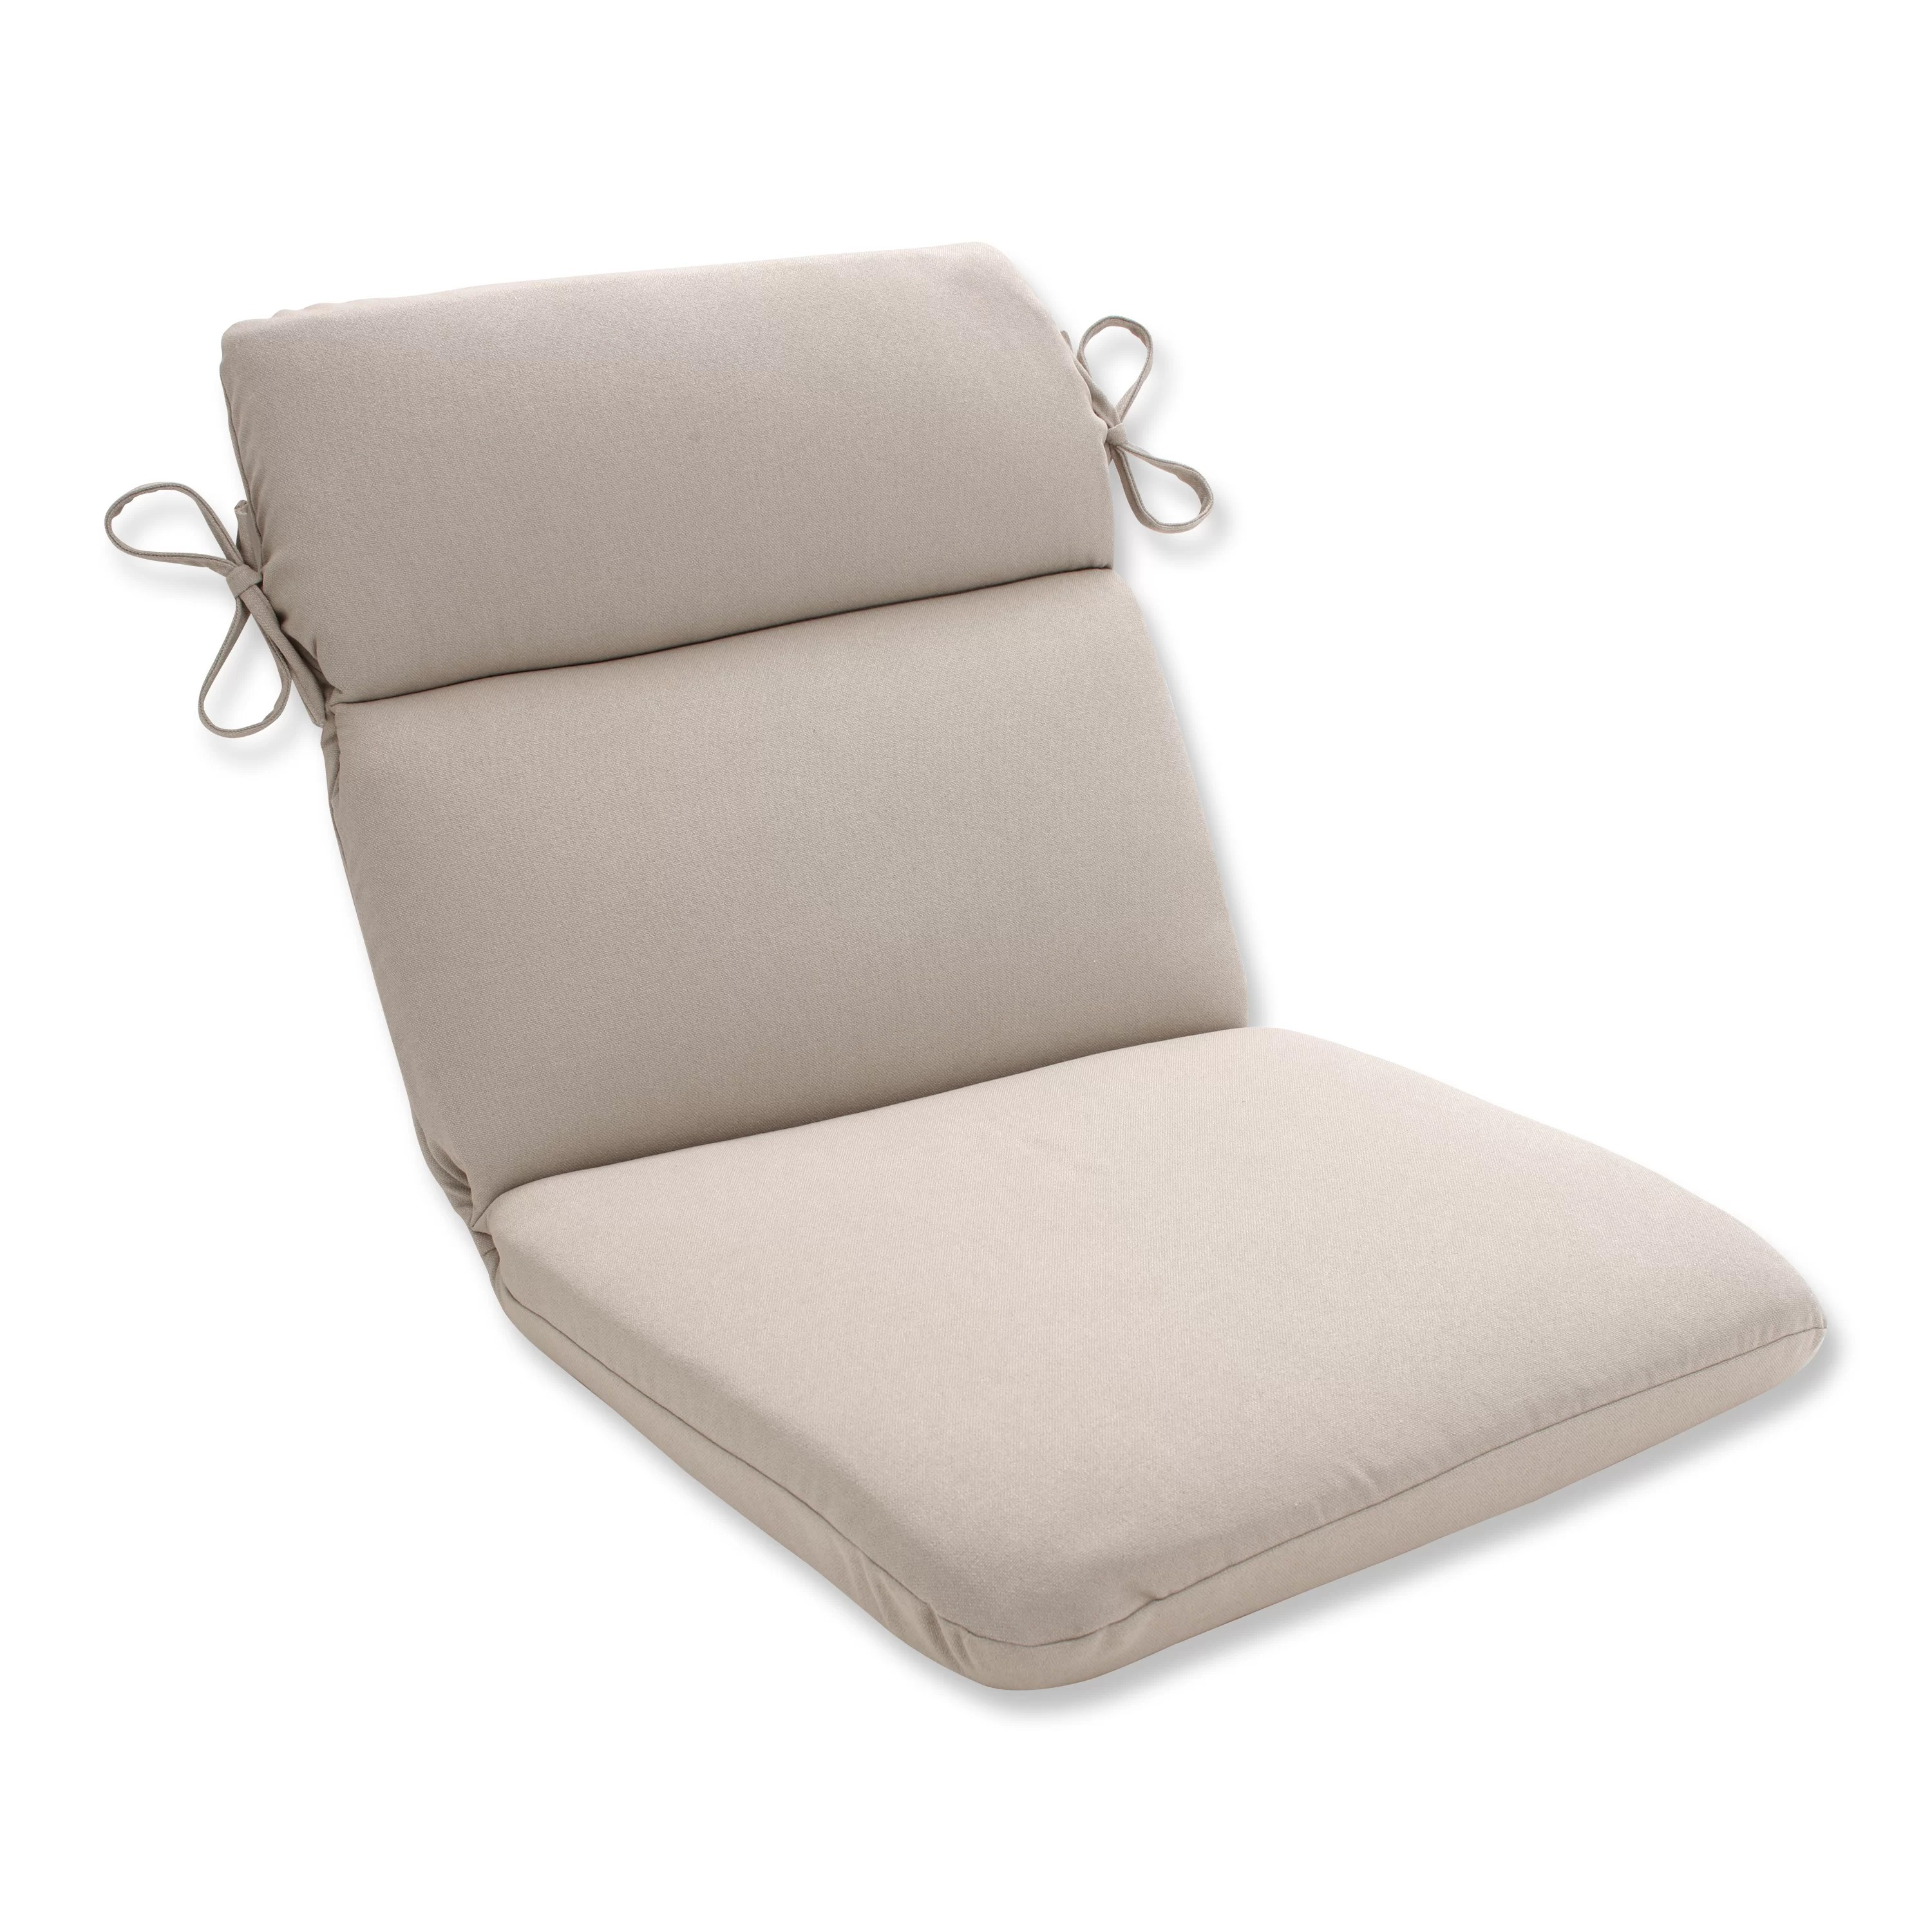 Outdoor Lounge Chair Cushions Pillow Perfect Outdoor Lounge Chair Cushion And Reviews